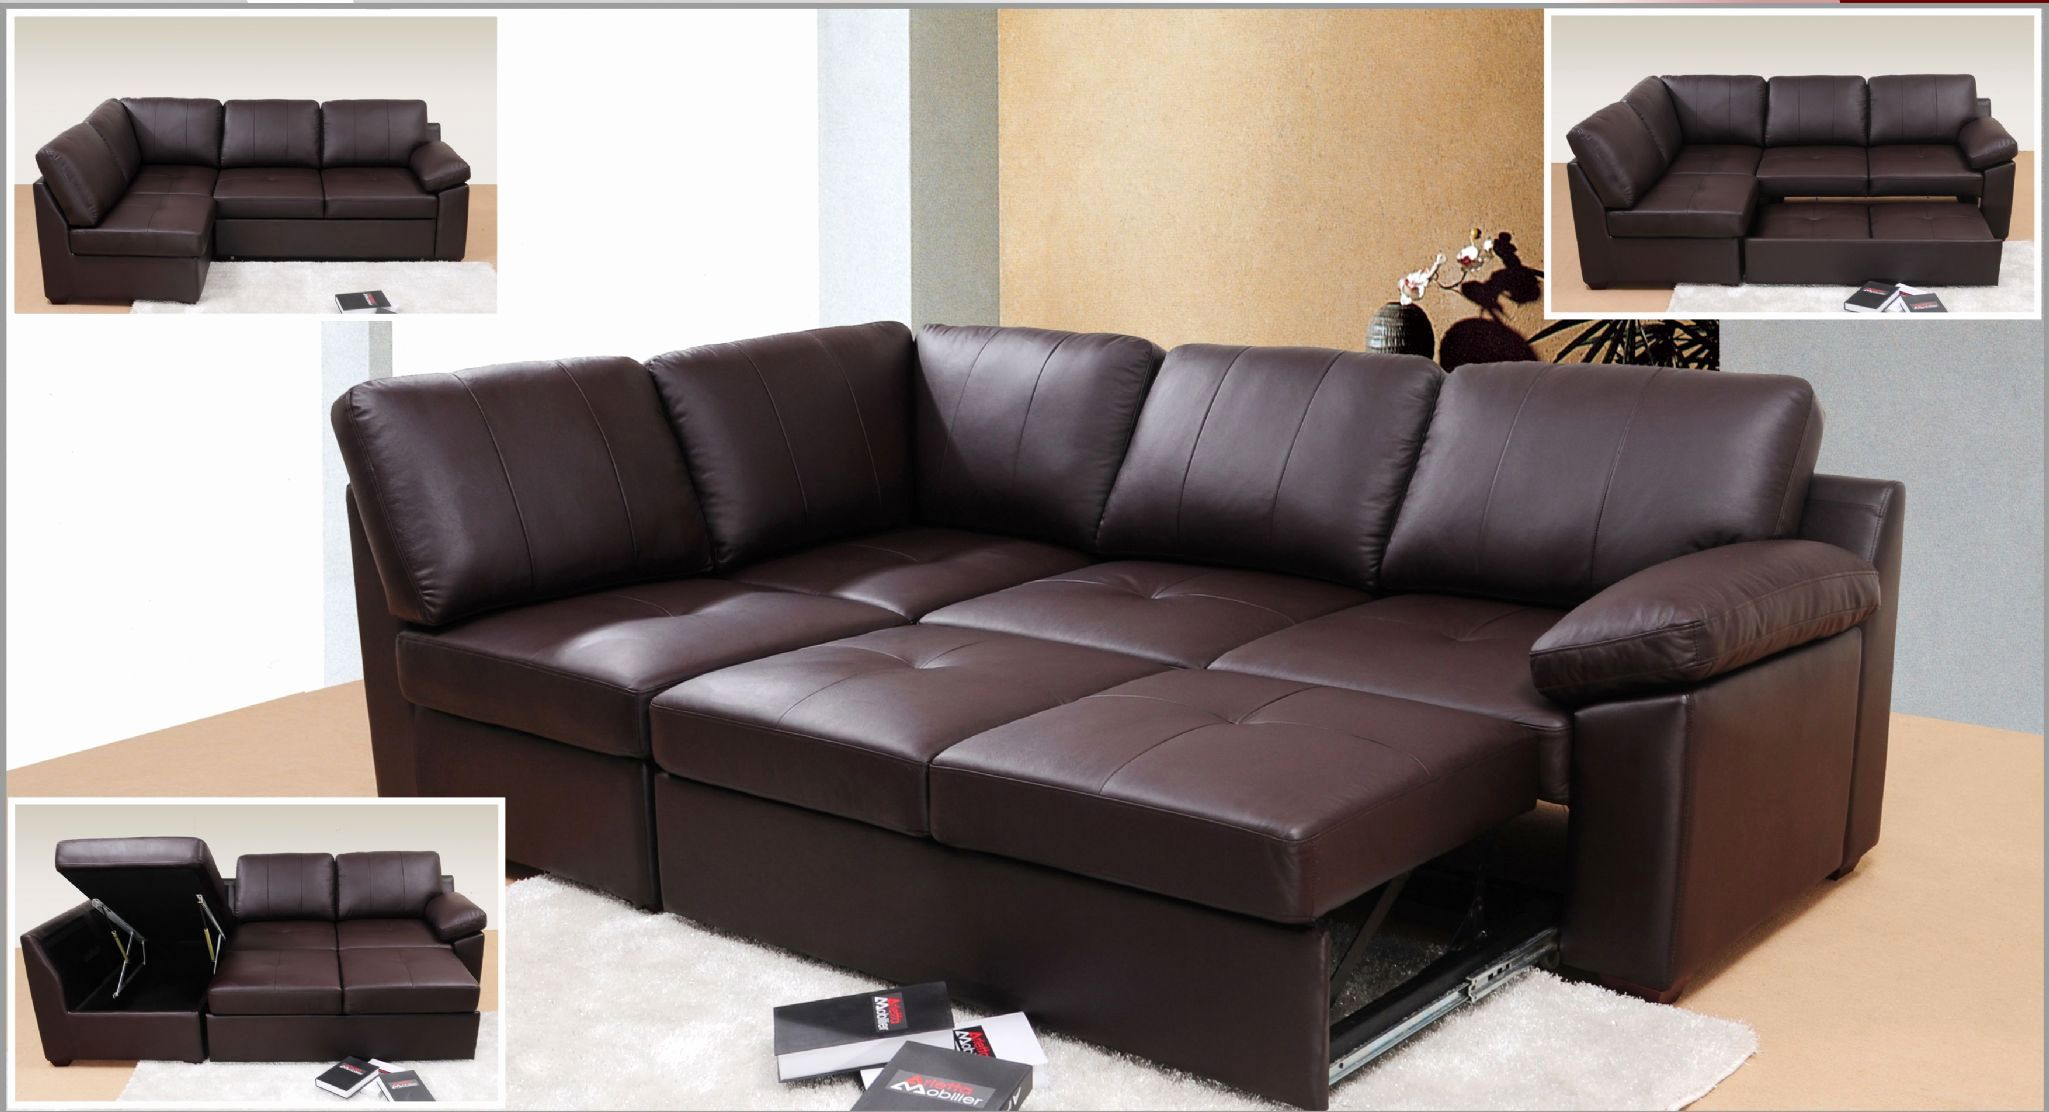 Idea Leather Corner Sofa Bed With Storage Photograpy Leather